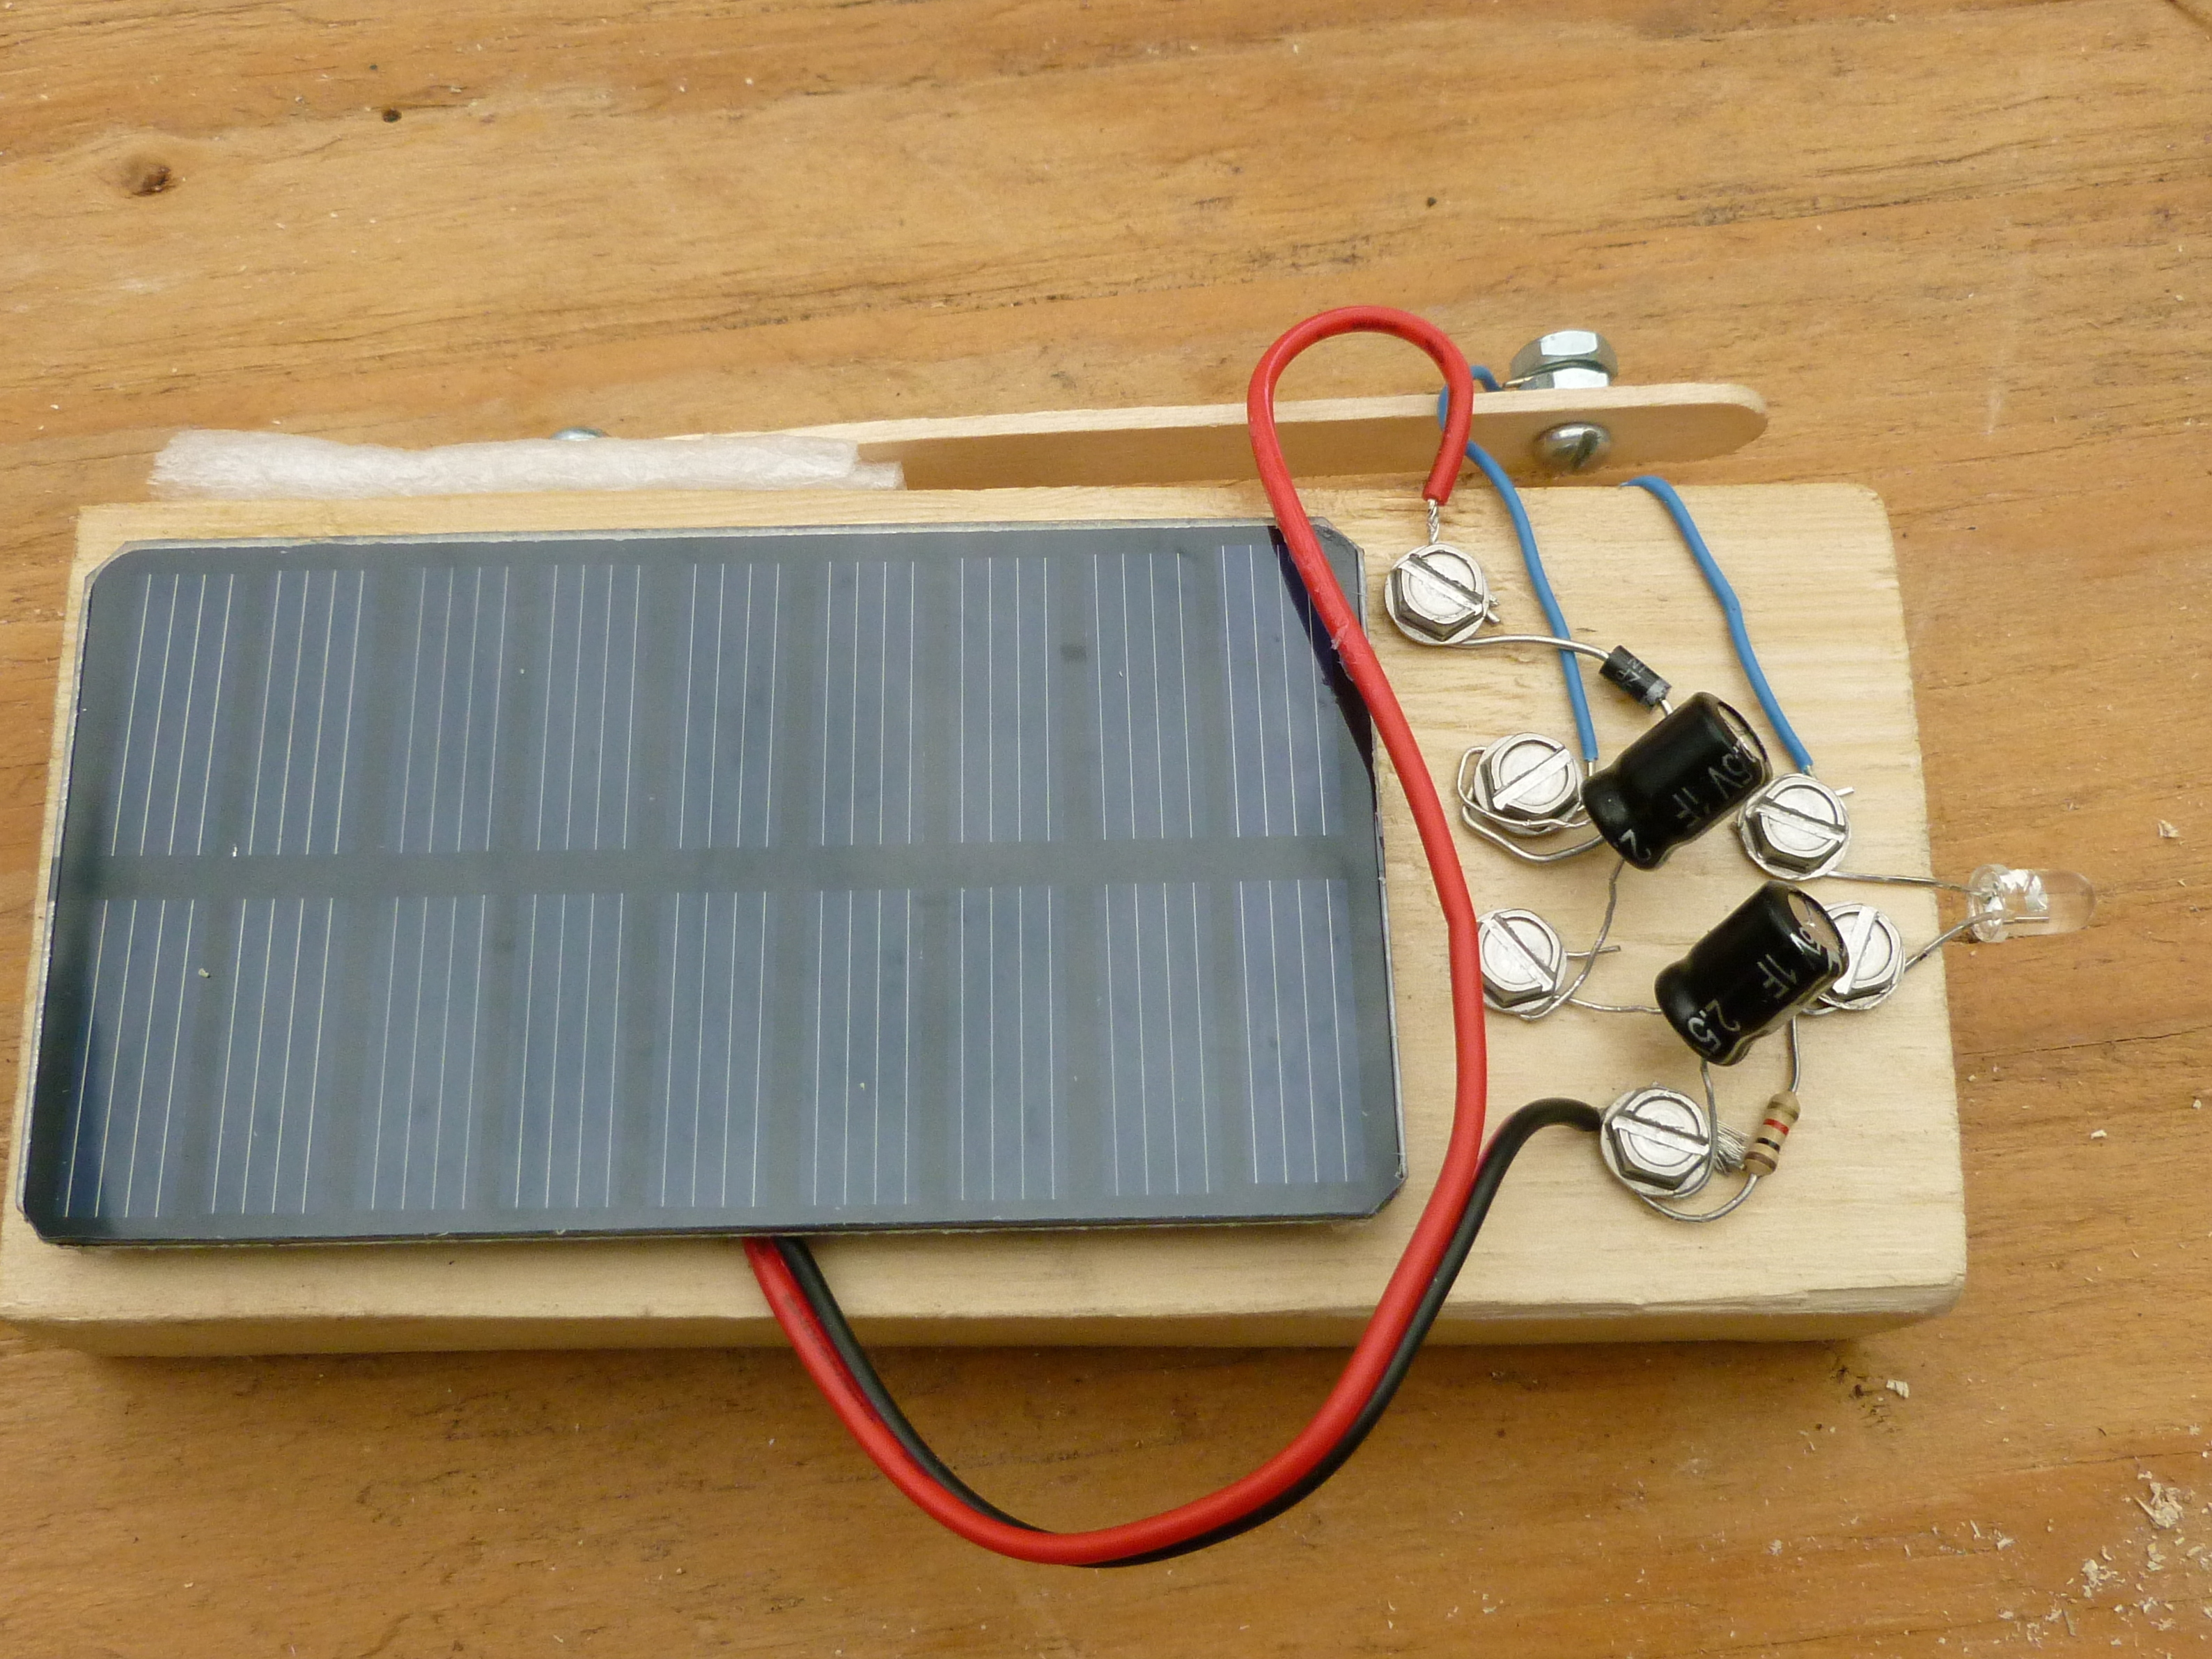 Solar Battery Charger Wiring Diagram Free Picture Solar Powered Flashlight With No Battery Make